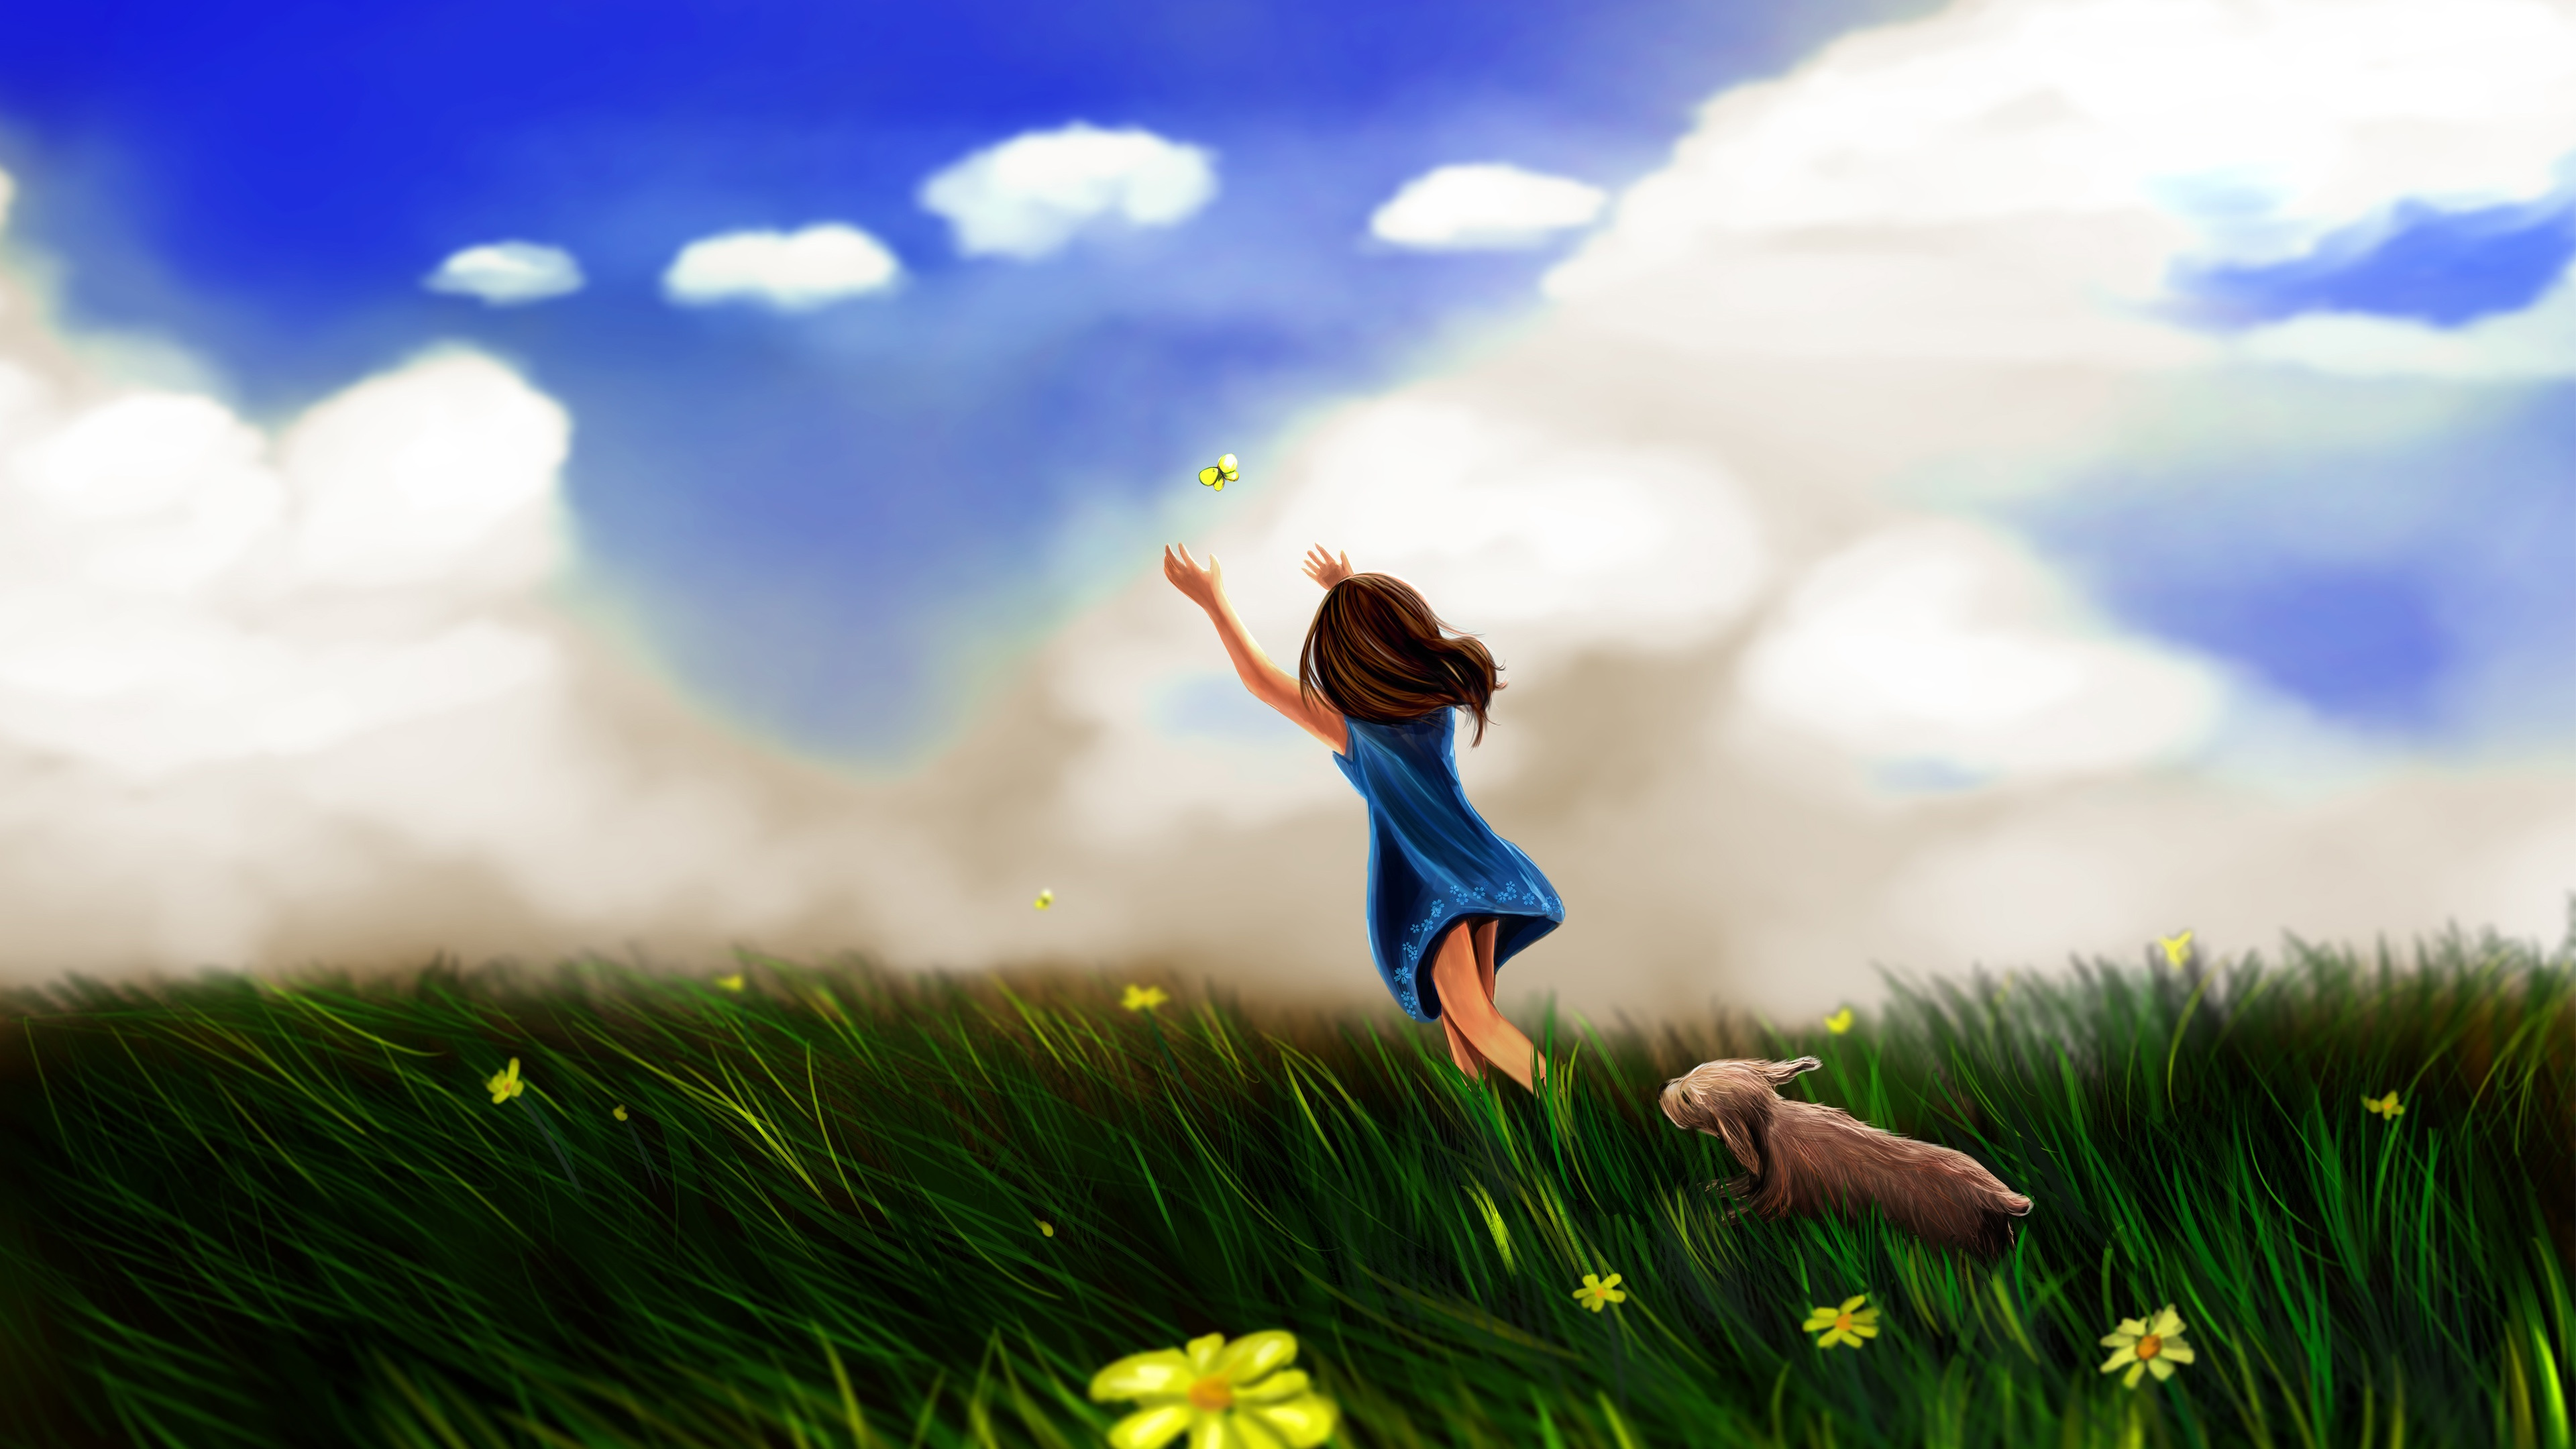 Animated Butterfly Wallpaper Girl Butterfly Play Wallpapers In Jpg Format For Free Download